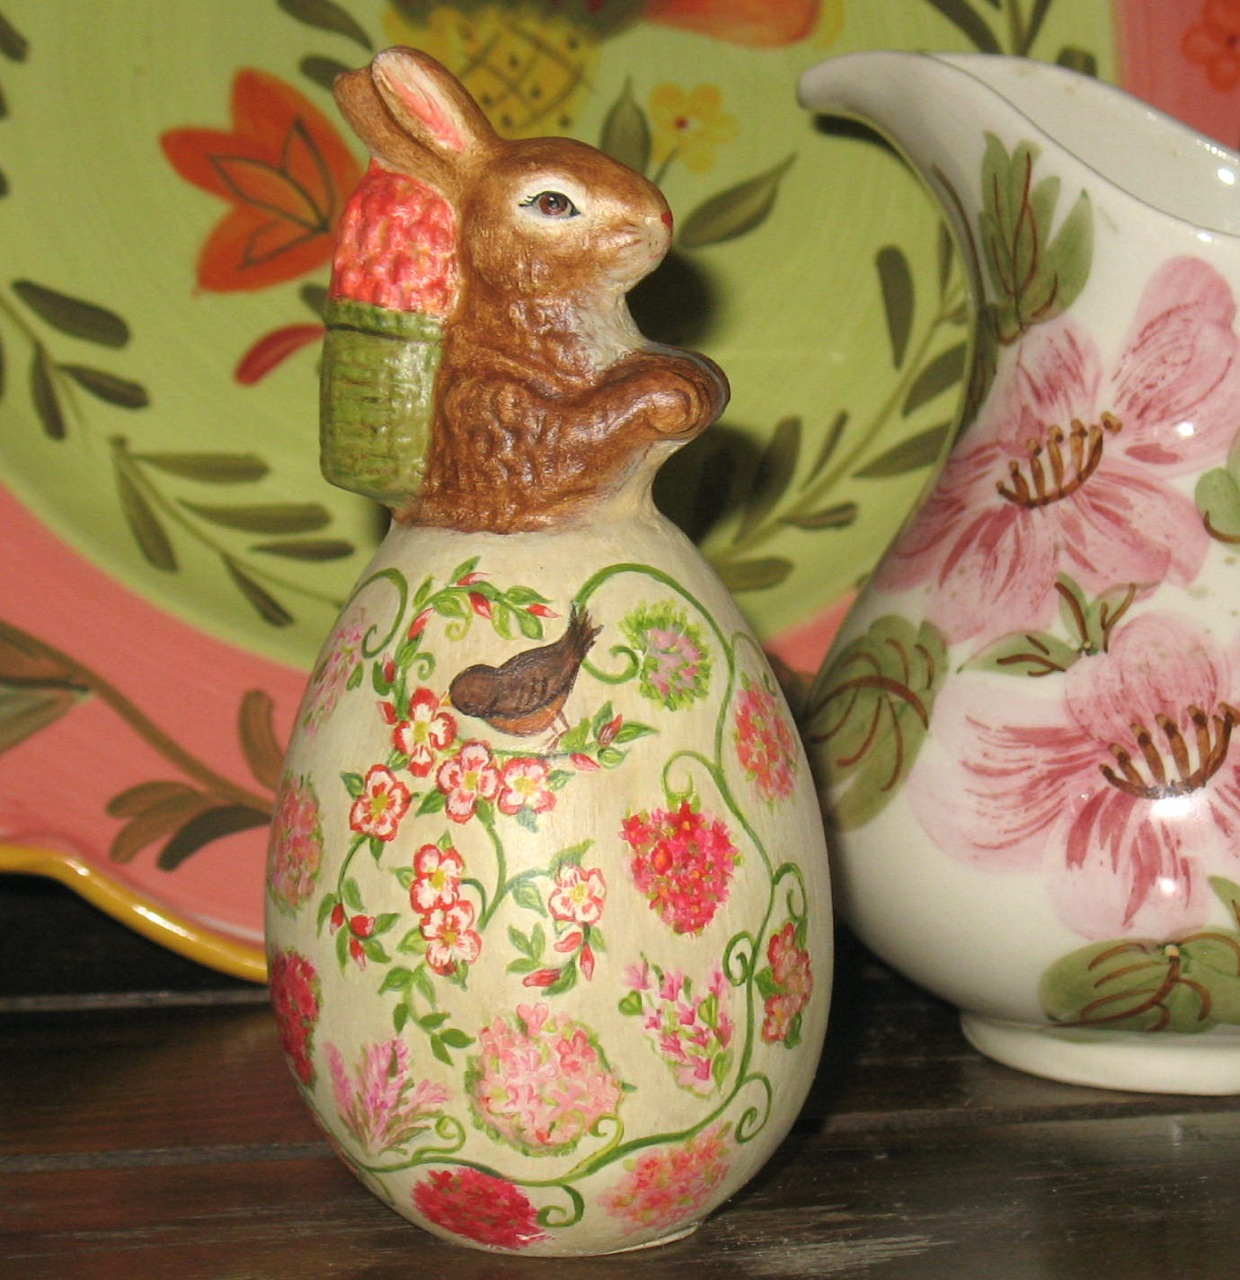 Bittersweet House Chalkware rabbit from antique chocolate mold